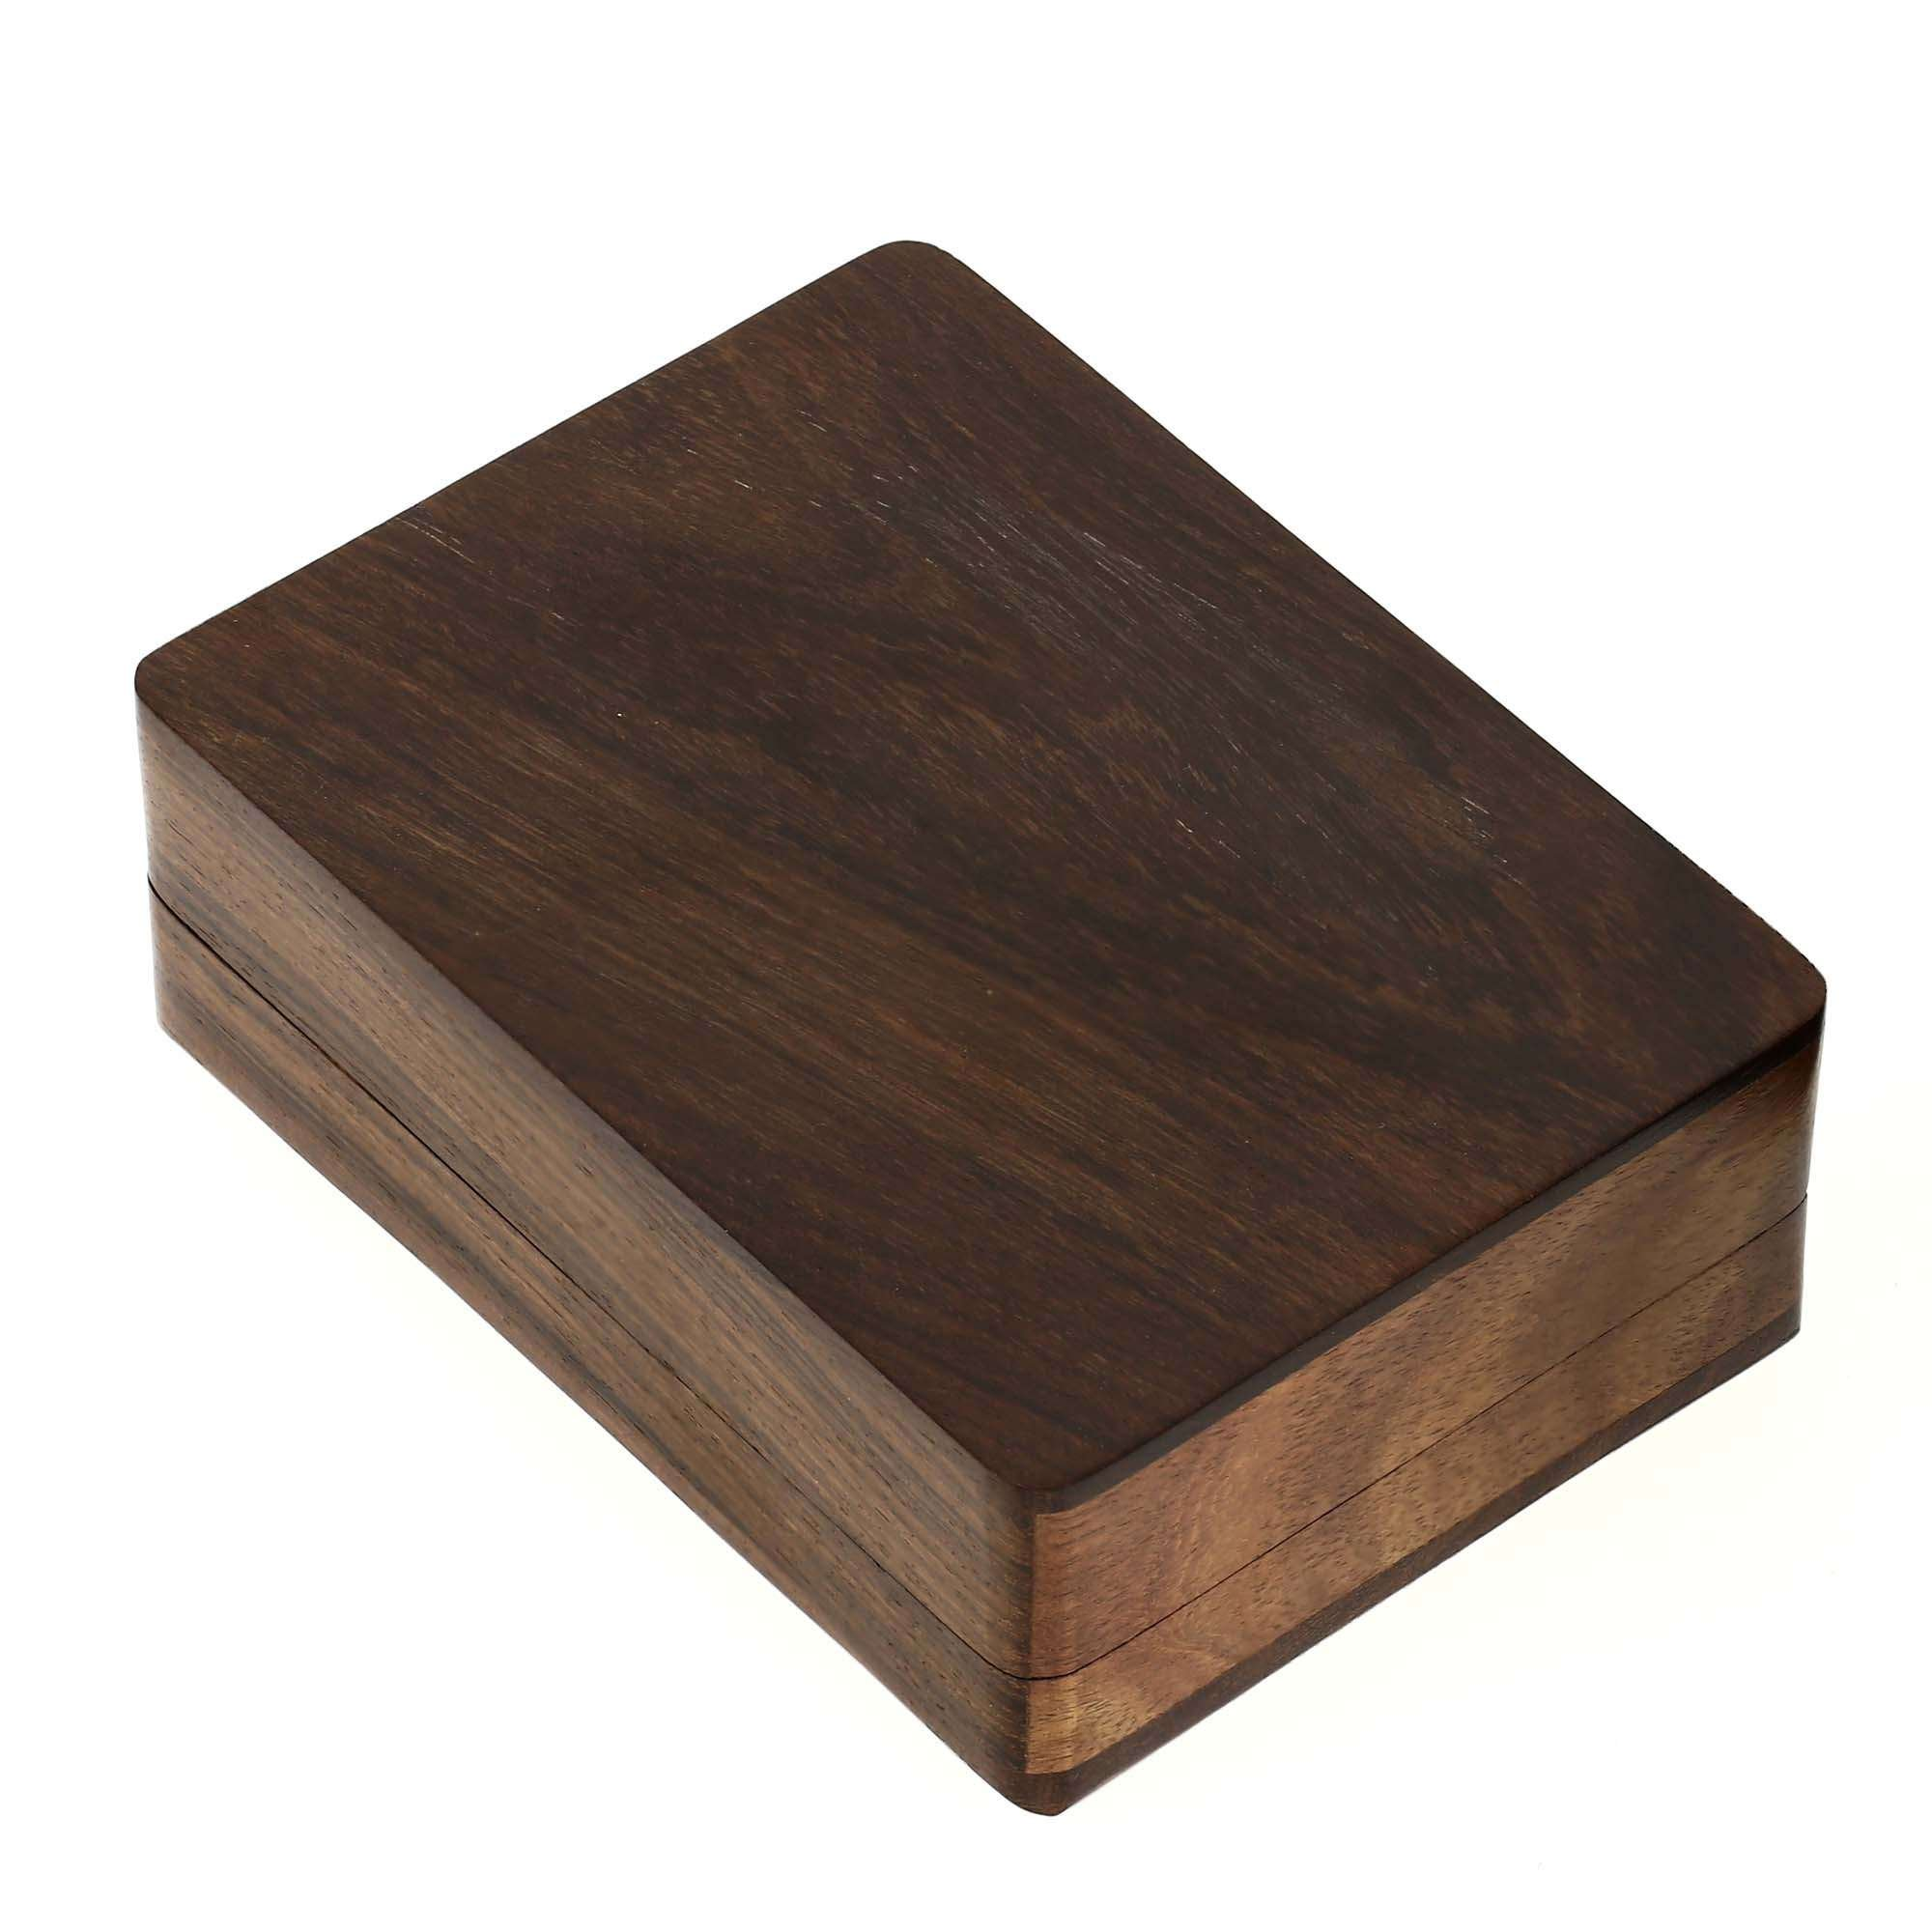 Wooden Boxes for Storage Playing Card Holder Artisan Crafted by ShalinIndia